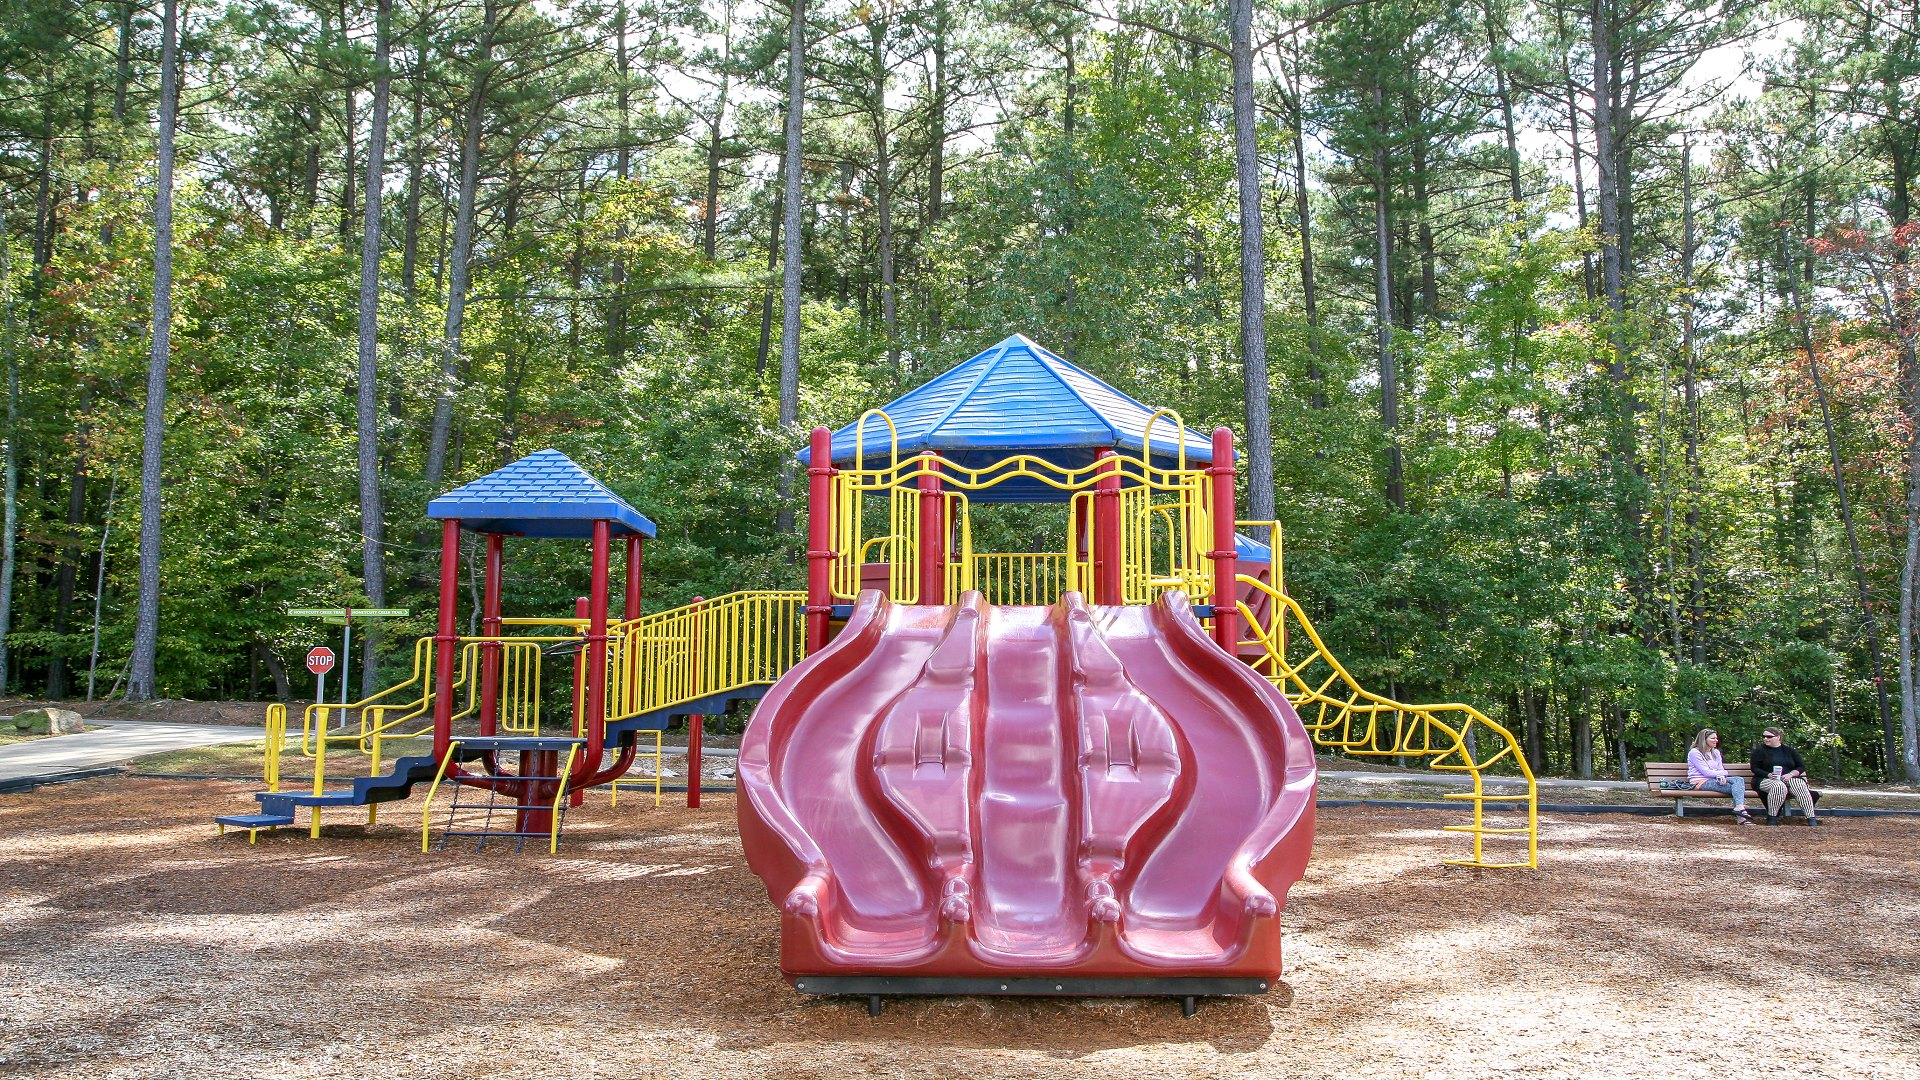 Honeycutt Park playground with multiple slides. For ages 5-12